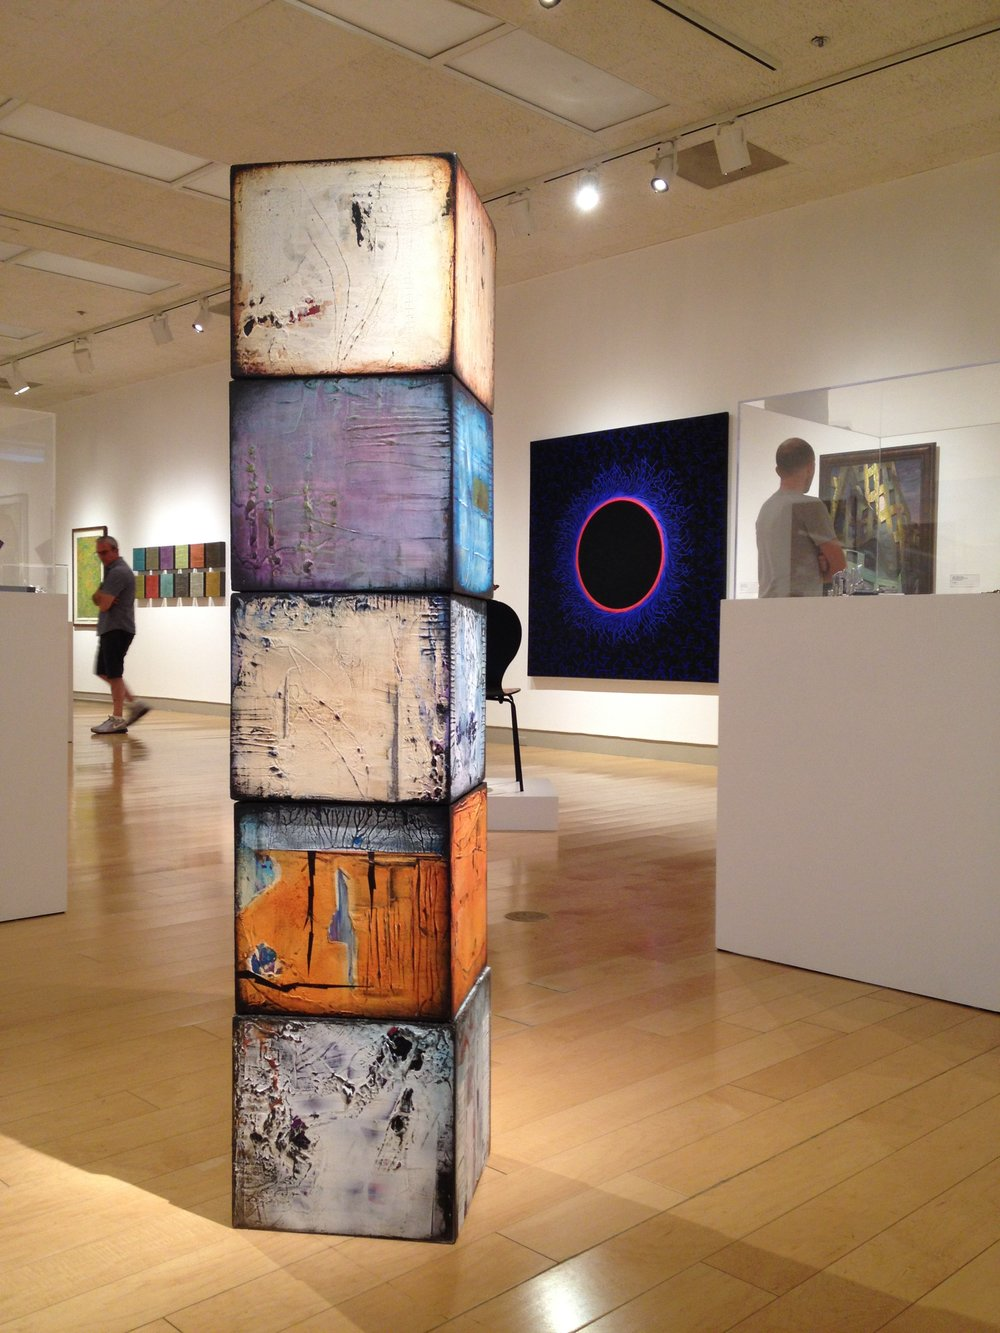 1ST AND MAIN, 2014, on wood, Preston Ormsby Award, AC exhibition, Palm Springs Art Museum